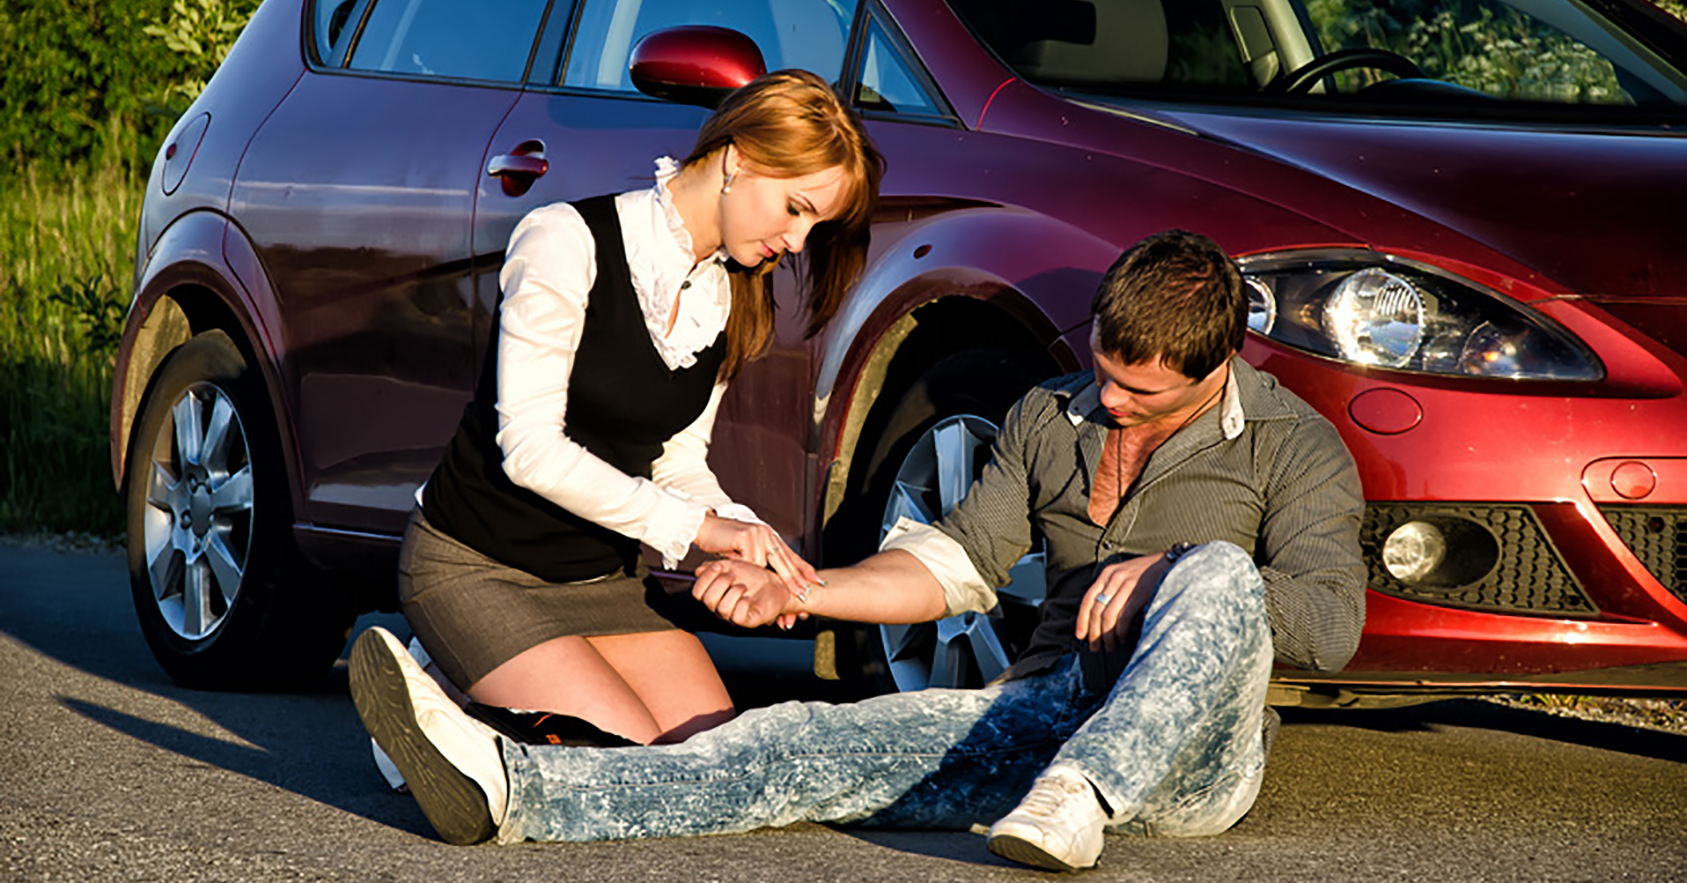 women giving first aid after driving